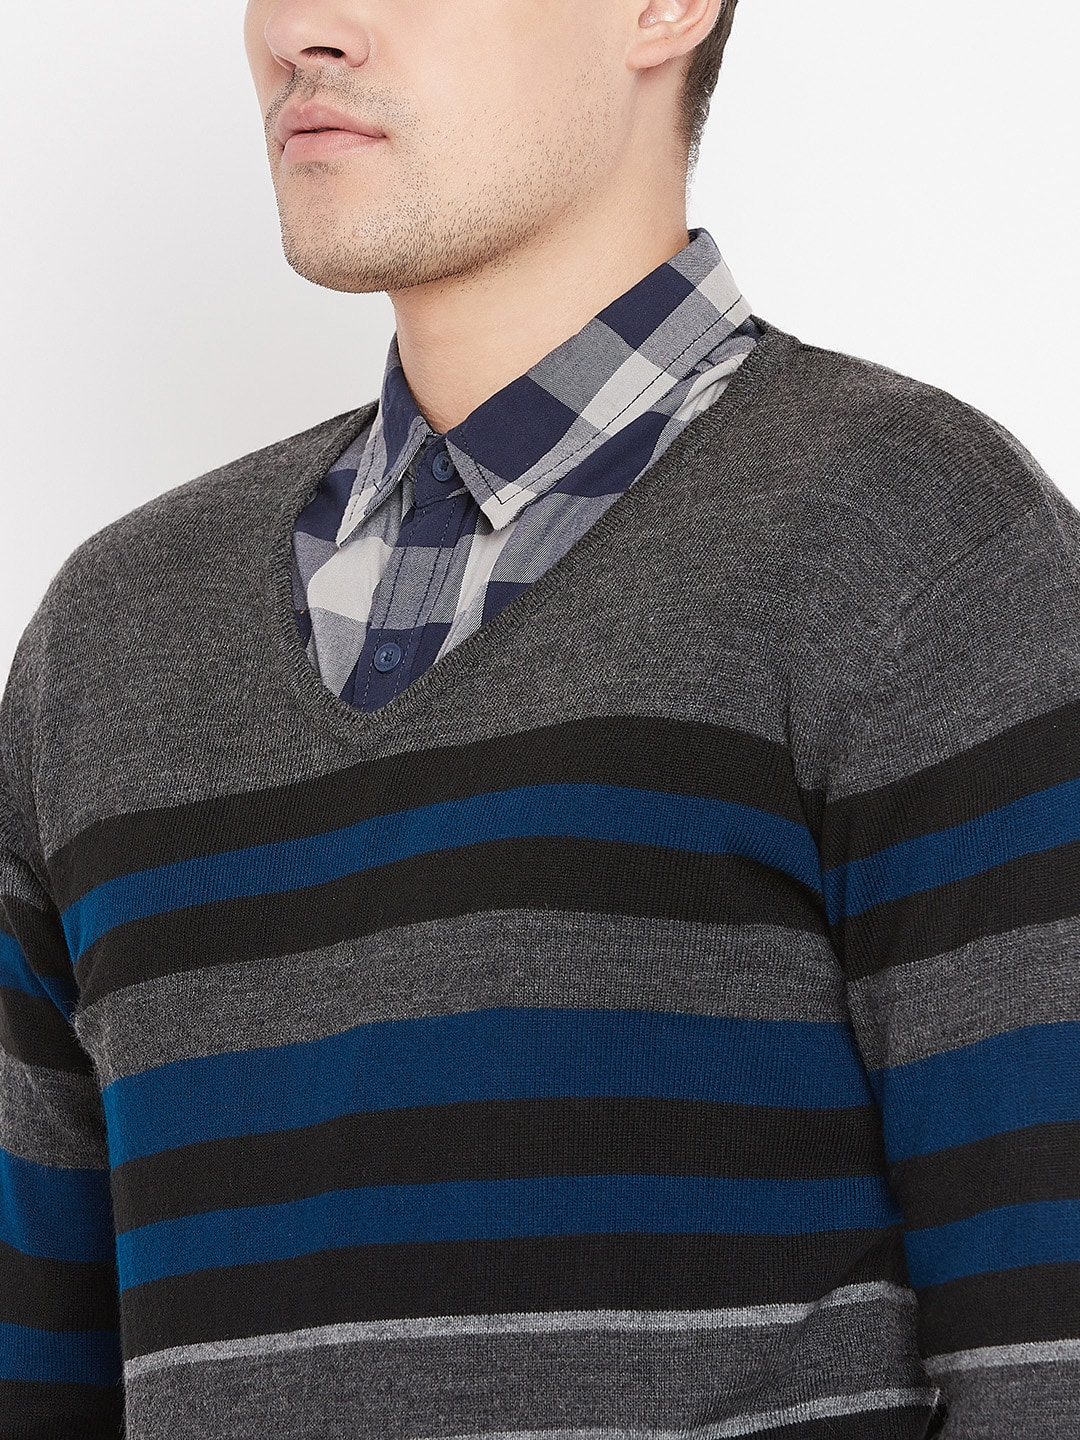 Peter England Men Charcoal Grey & Teal Blue Striped Sweater